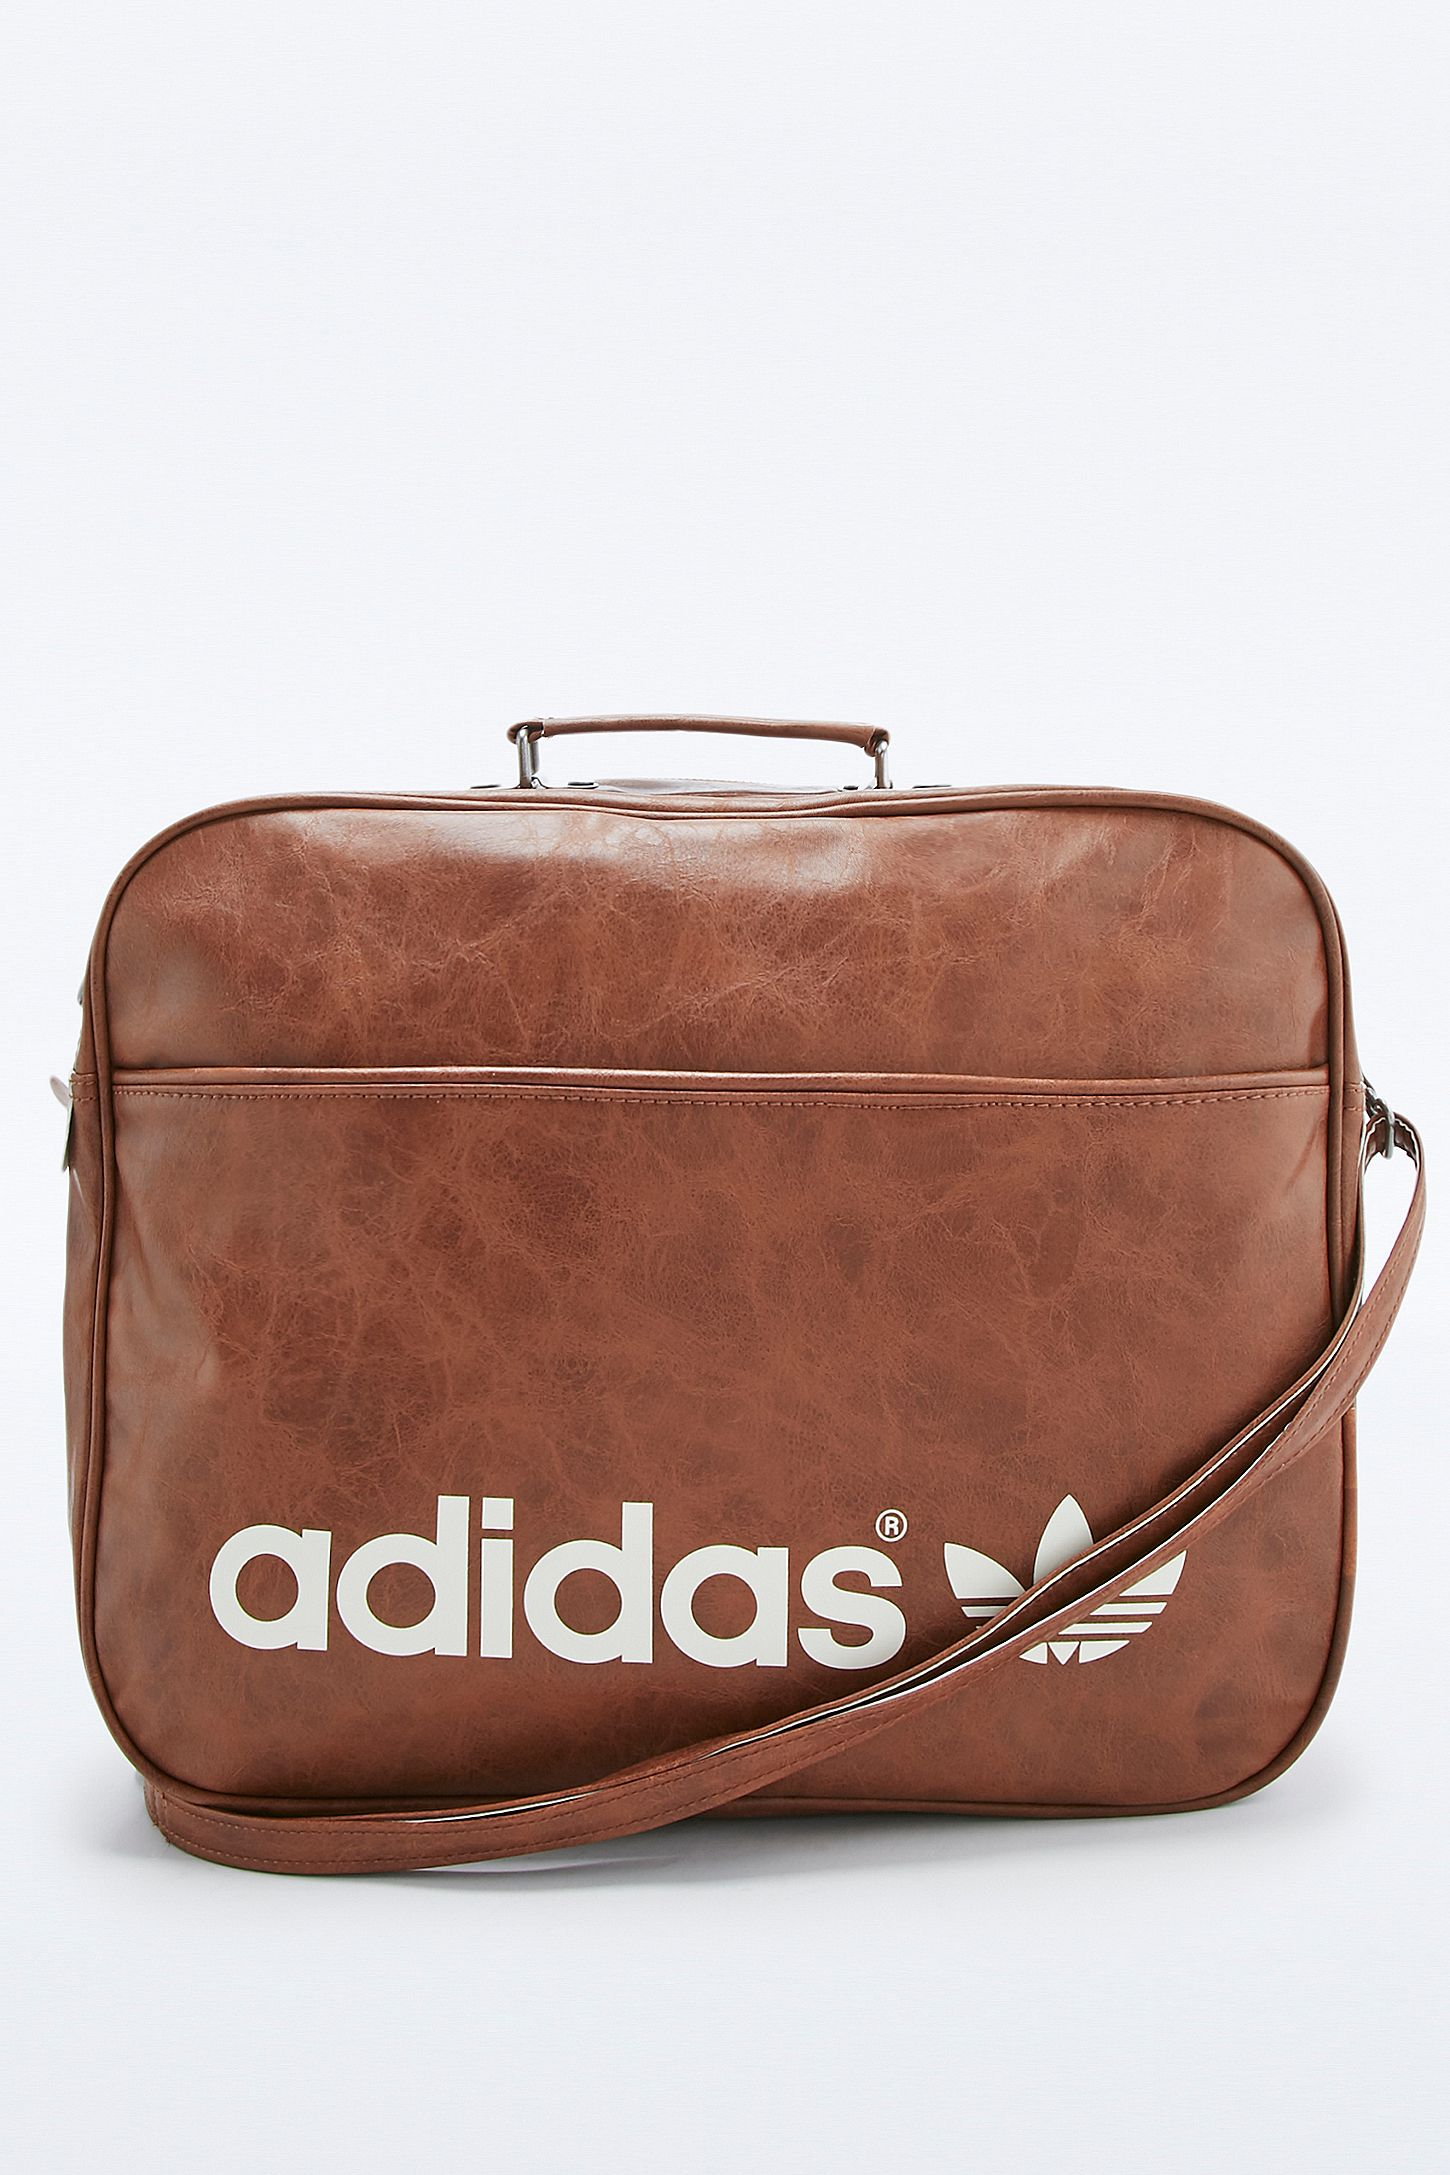 b0b8d1ebed adidas Originals Brown Vintage Airline Bag. Click on image to zoom. Hover  to zoom. Double Tap to Zoom